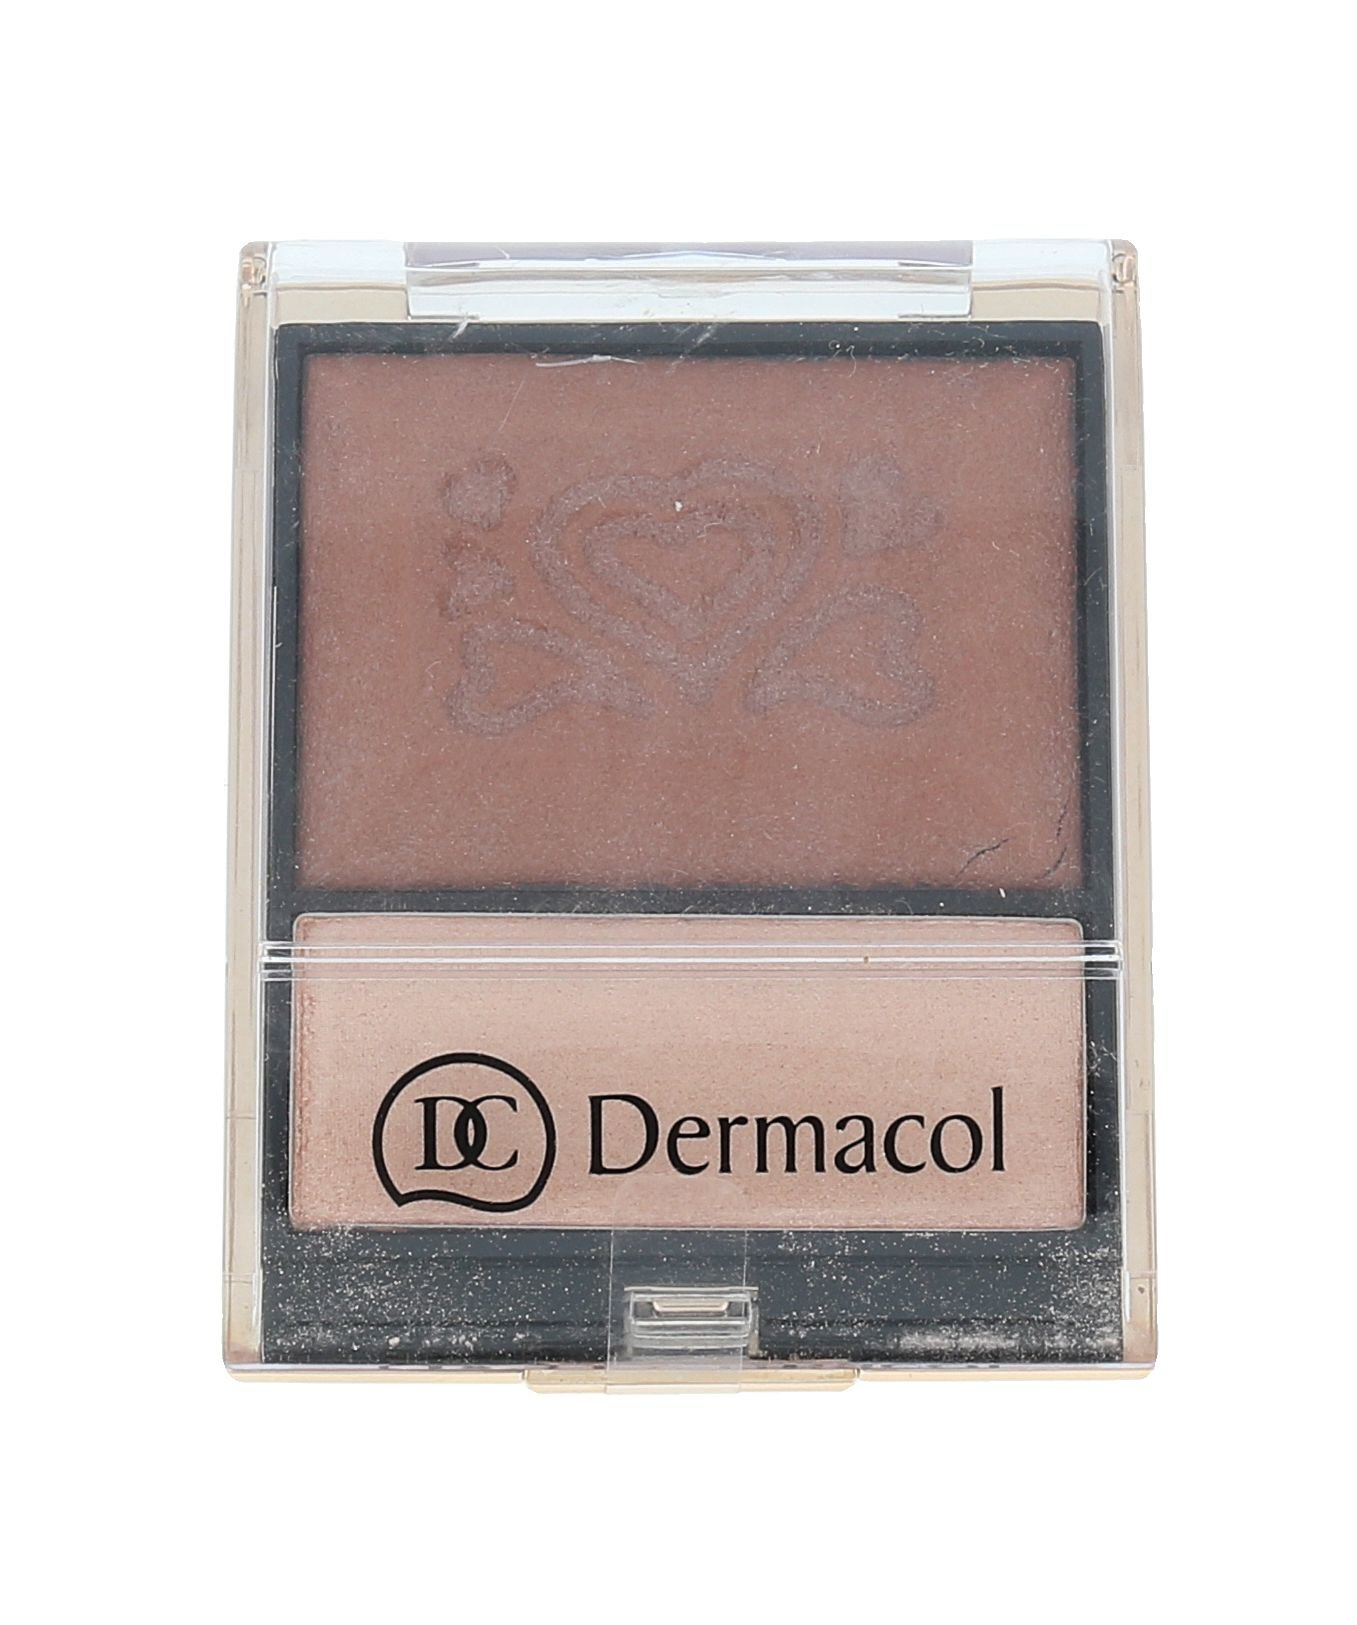 Dermacol Blush & Illuminator Cosmetic 9ml 6